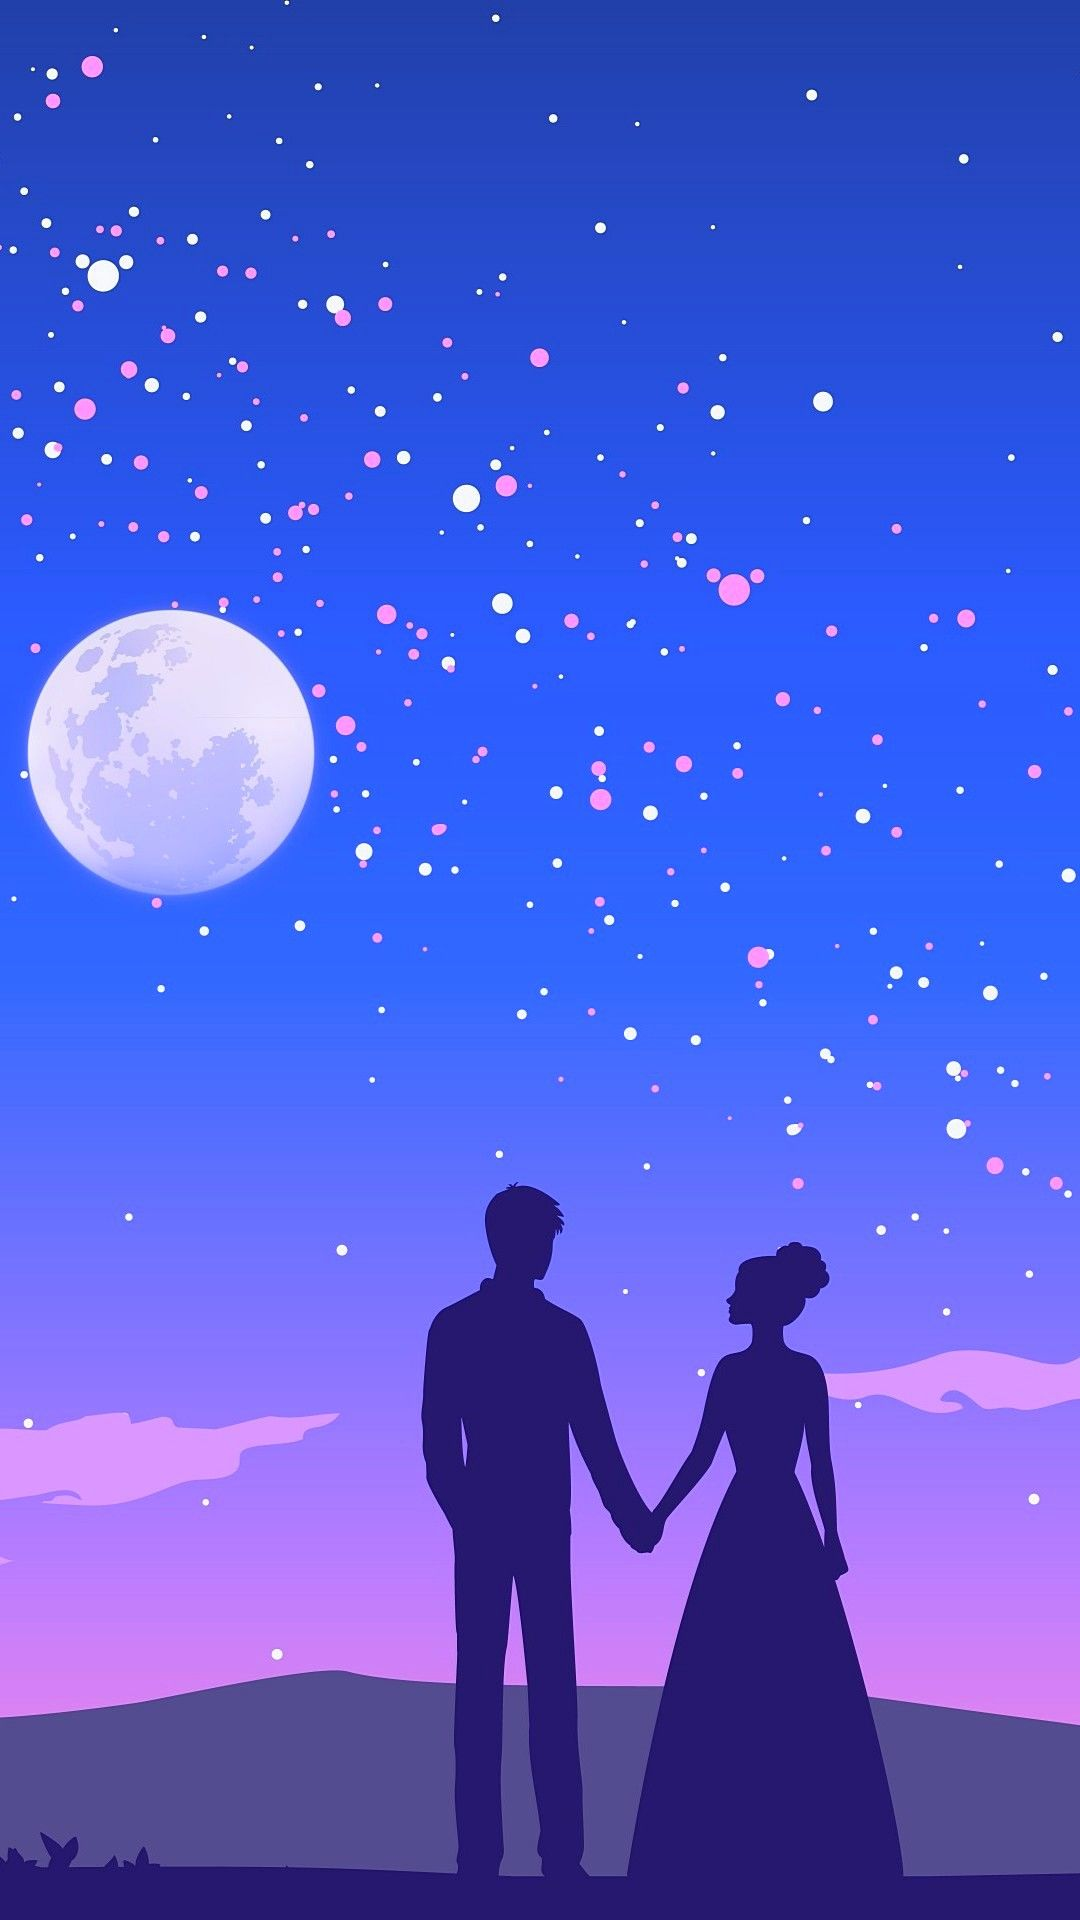 Couples Holding Hand Love Hd Wallpapers 1080x1920 Love Wallpapers Romantic Full Hd Love Wallpaper Aesthetic Instagram Theme